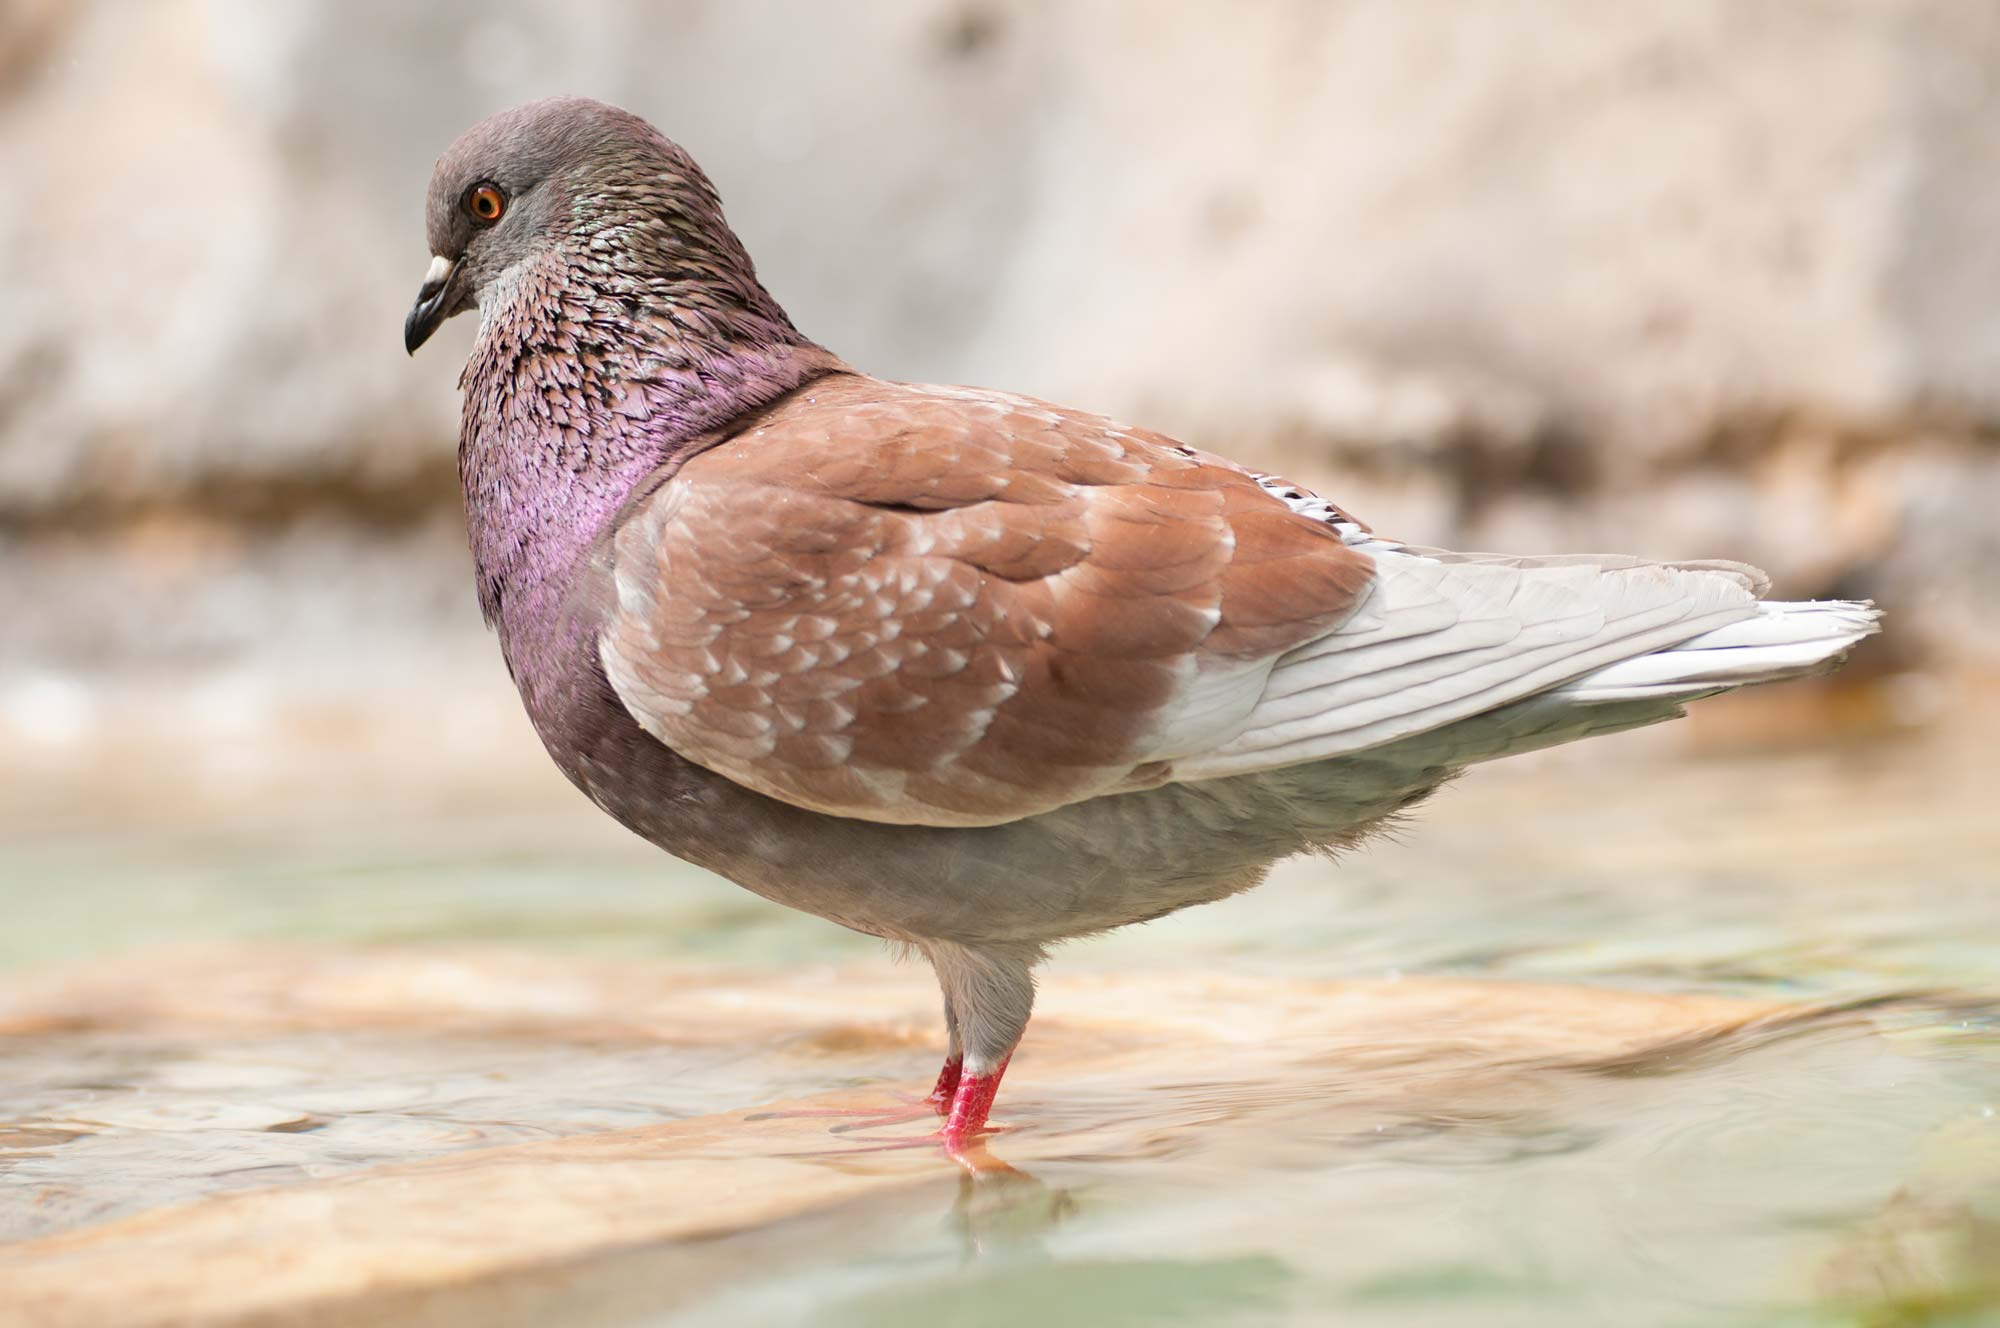 house the birds will put you at risk of contracting a disease. What follows are four of the most common diseases passed by pigeons